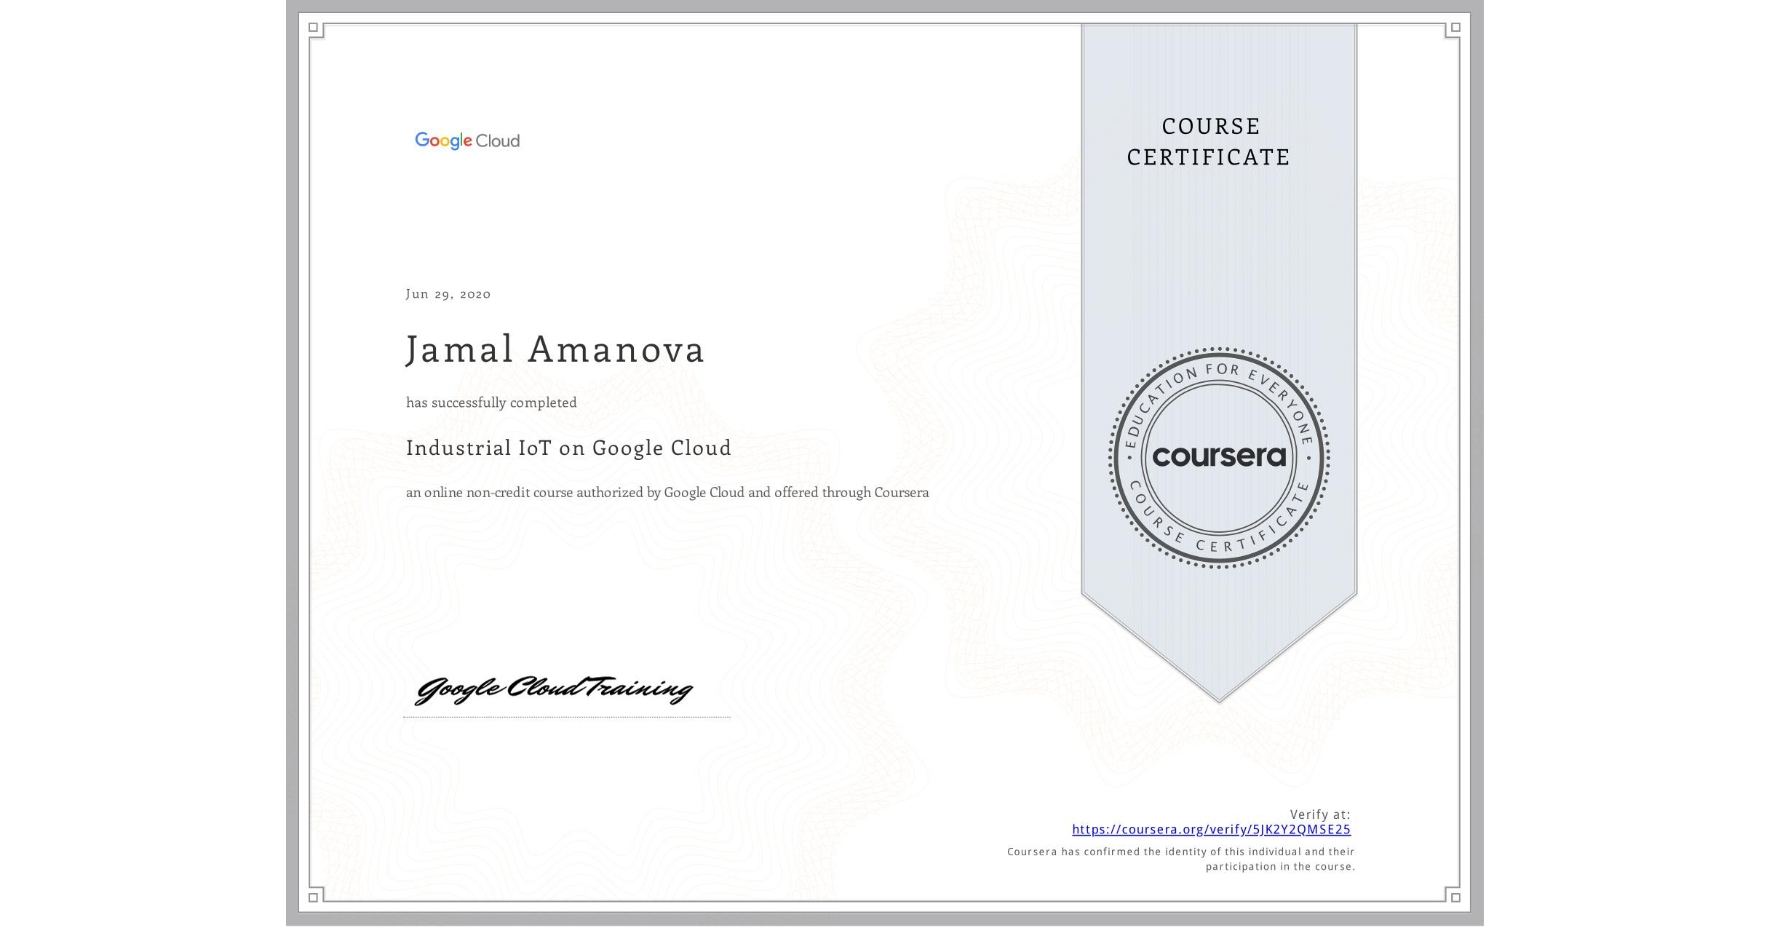 View certificate for Jamal Amanova, Industrial IoT on Google Cloud, an online non-credit course authorized by Google Cloud and offered through Coursera